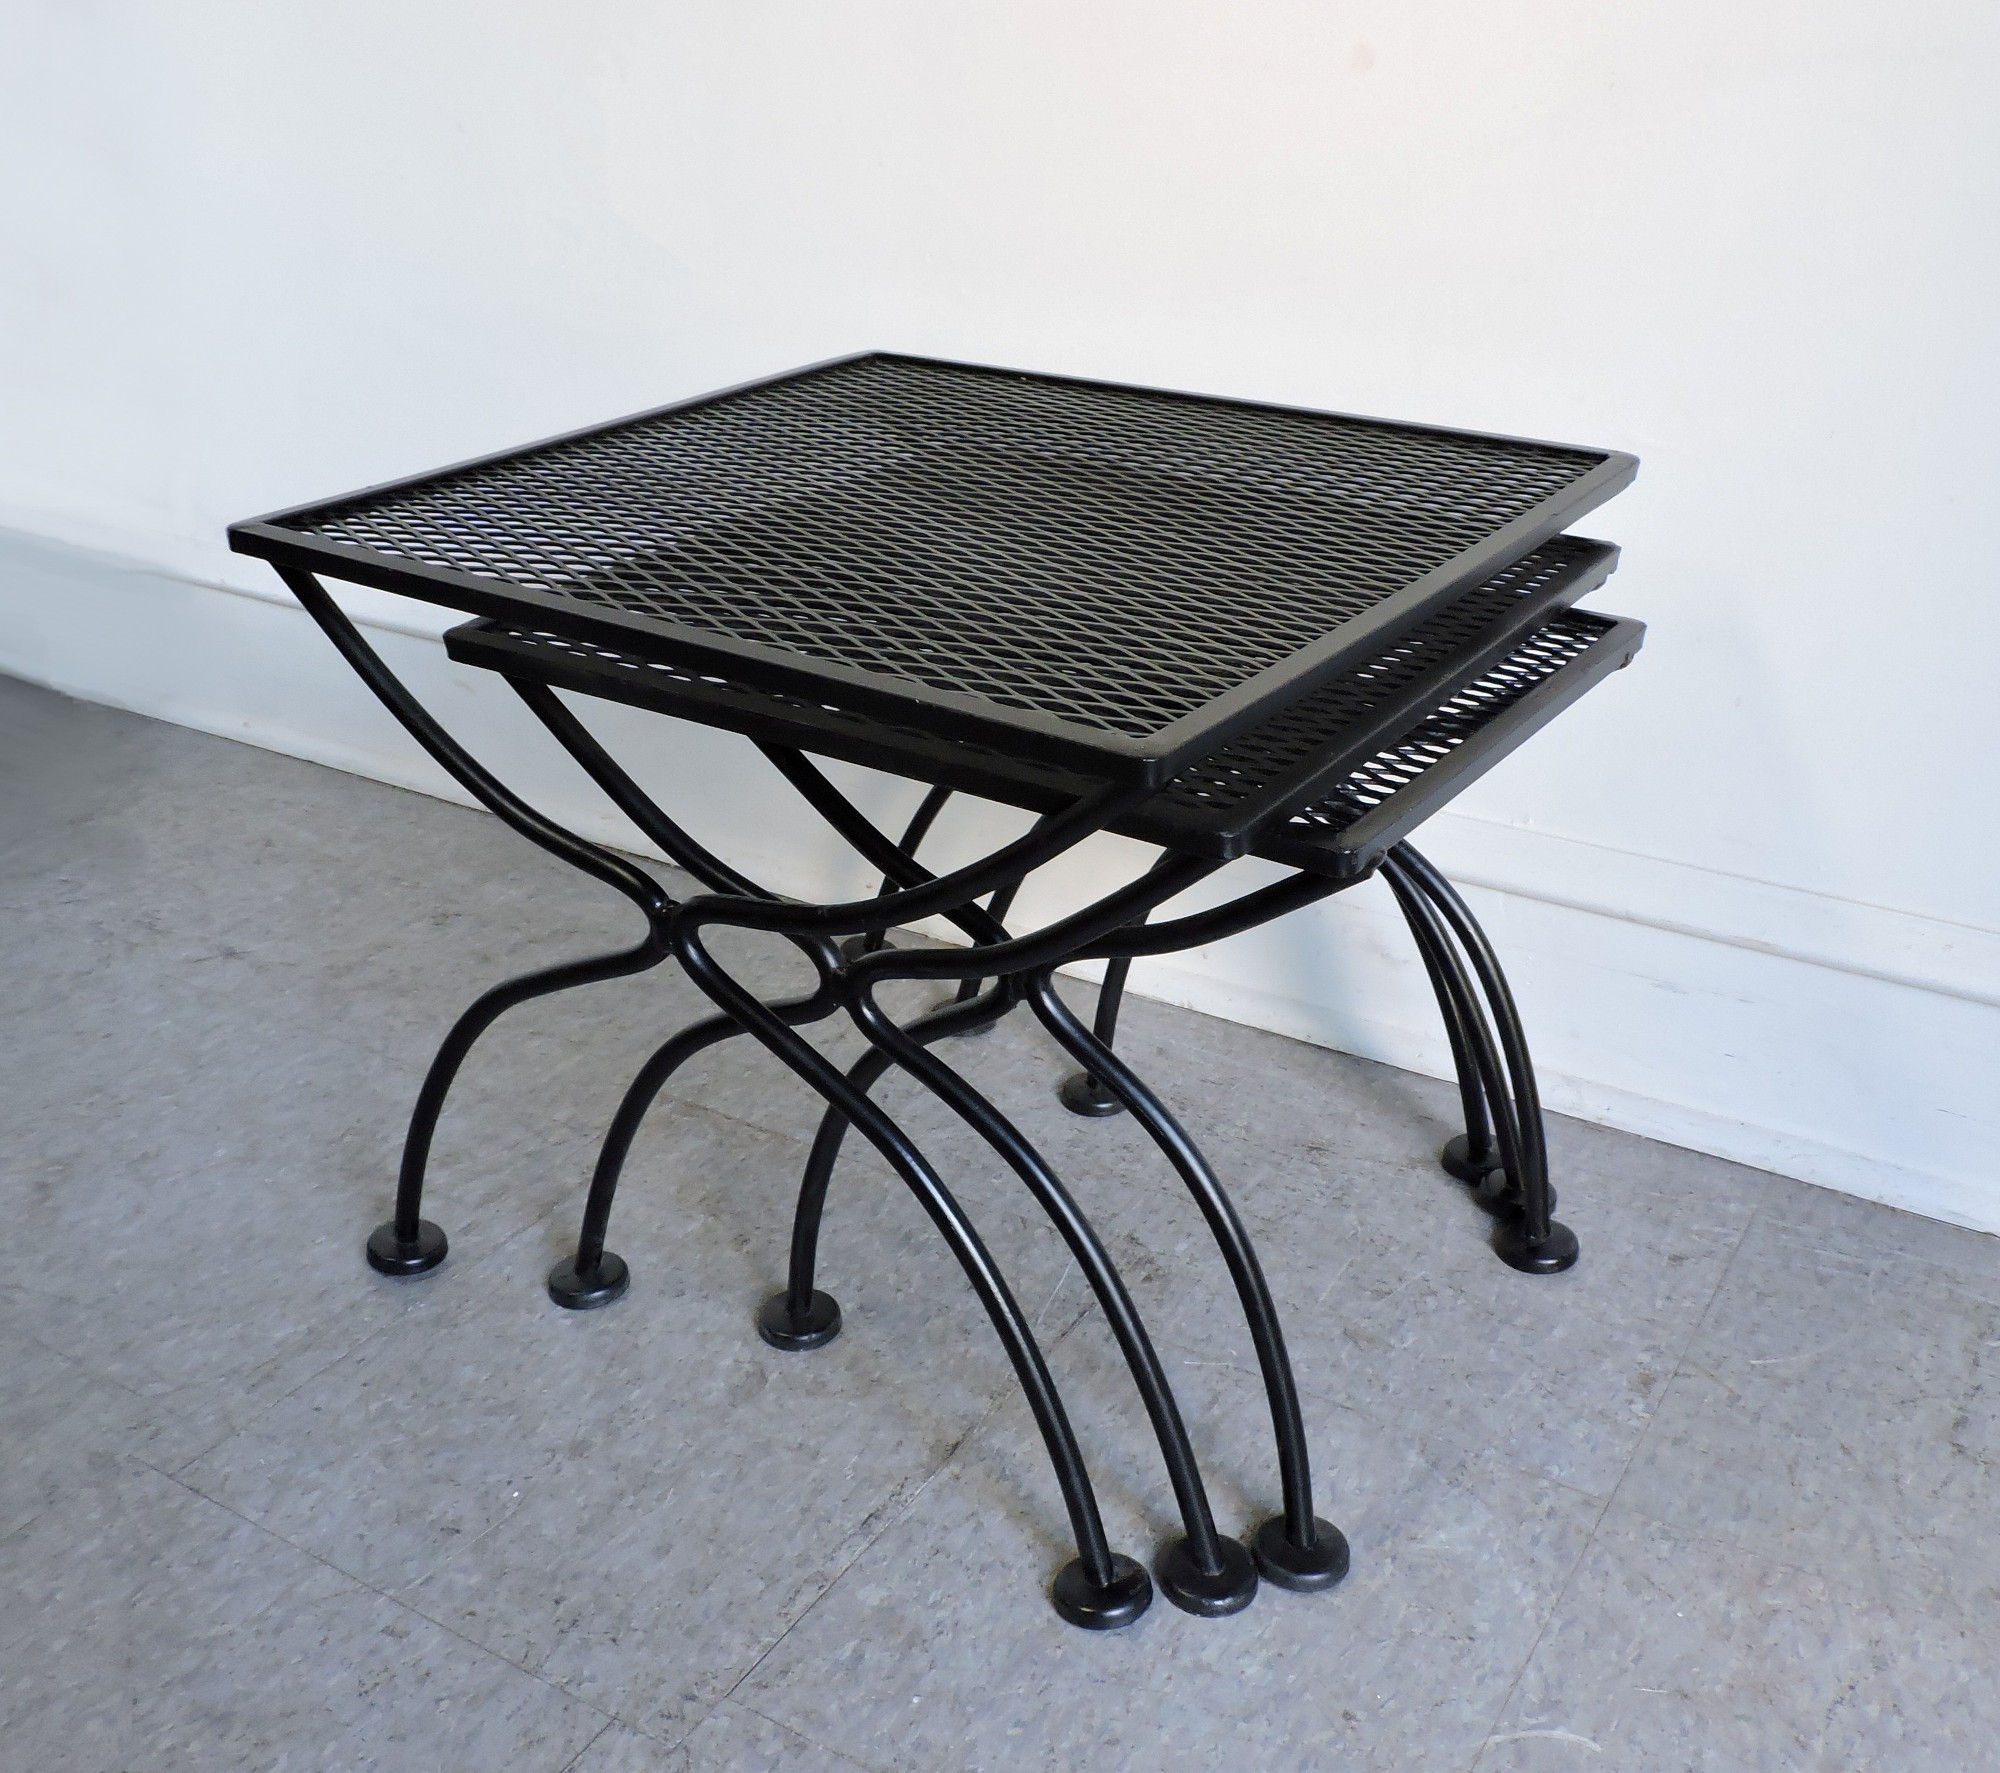 Marvelous Beautiful Set Of 3 Salterini Wrought Iron Nesting Tables For The Patio.  Sturdy And Well Made, These Have A Fresh Coat Of Black Paint.